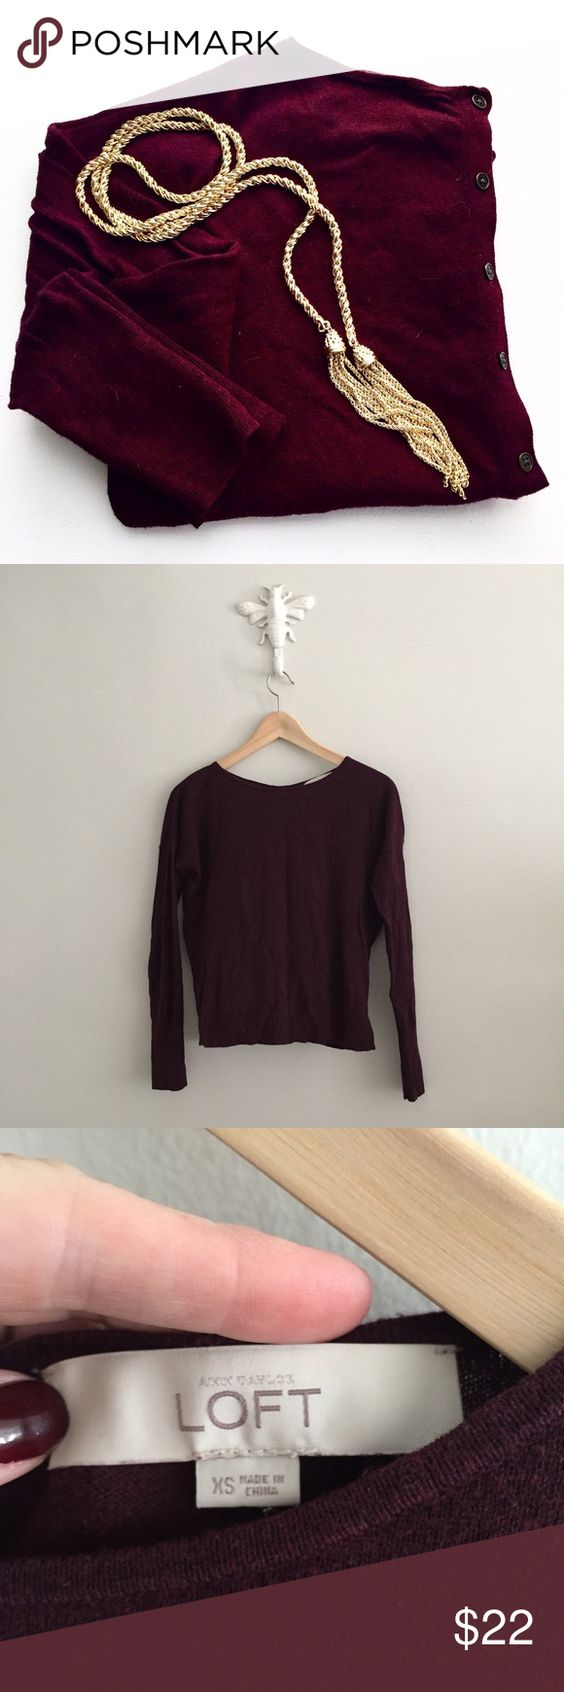 """LOFT Wine Button Back Lightweight Sweater Super cute button back detail on a wine colored sweater! Light weight and perfect layered under a jacket. Size XS. Absolutely excellent condition! No rips or stains! Chest measures approx. 21.5"""" from underarm to underarm. Length measures approx. 21"""". 56% cotton • 29% rayon • 15% nylon. Machine wash cold. •0913160200• LOFT Sweaters Crew & Scoop Necks"""